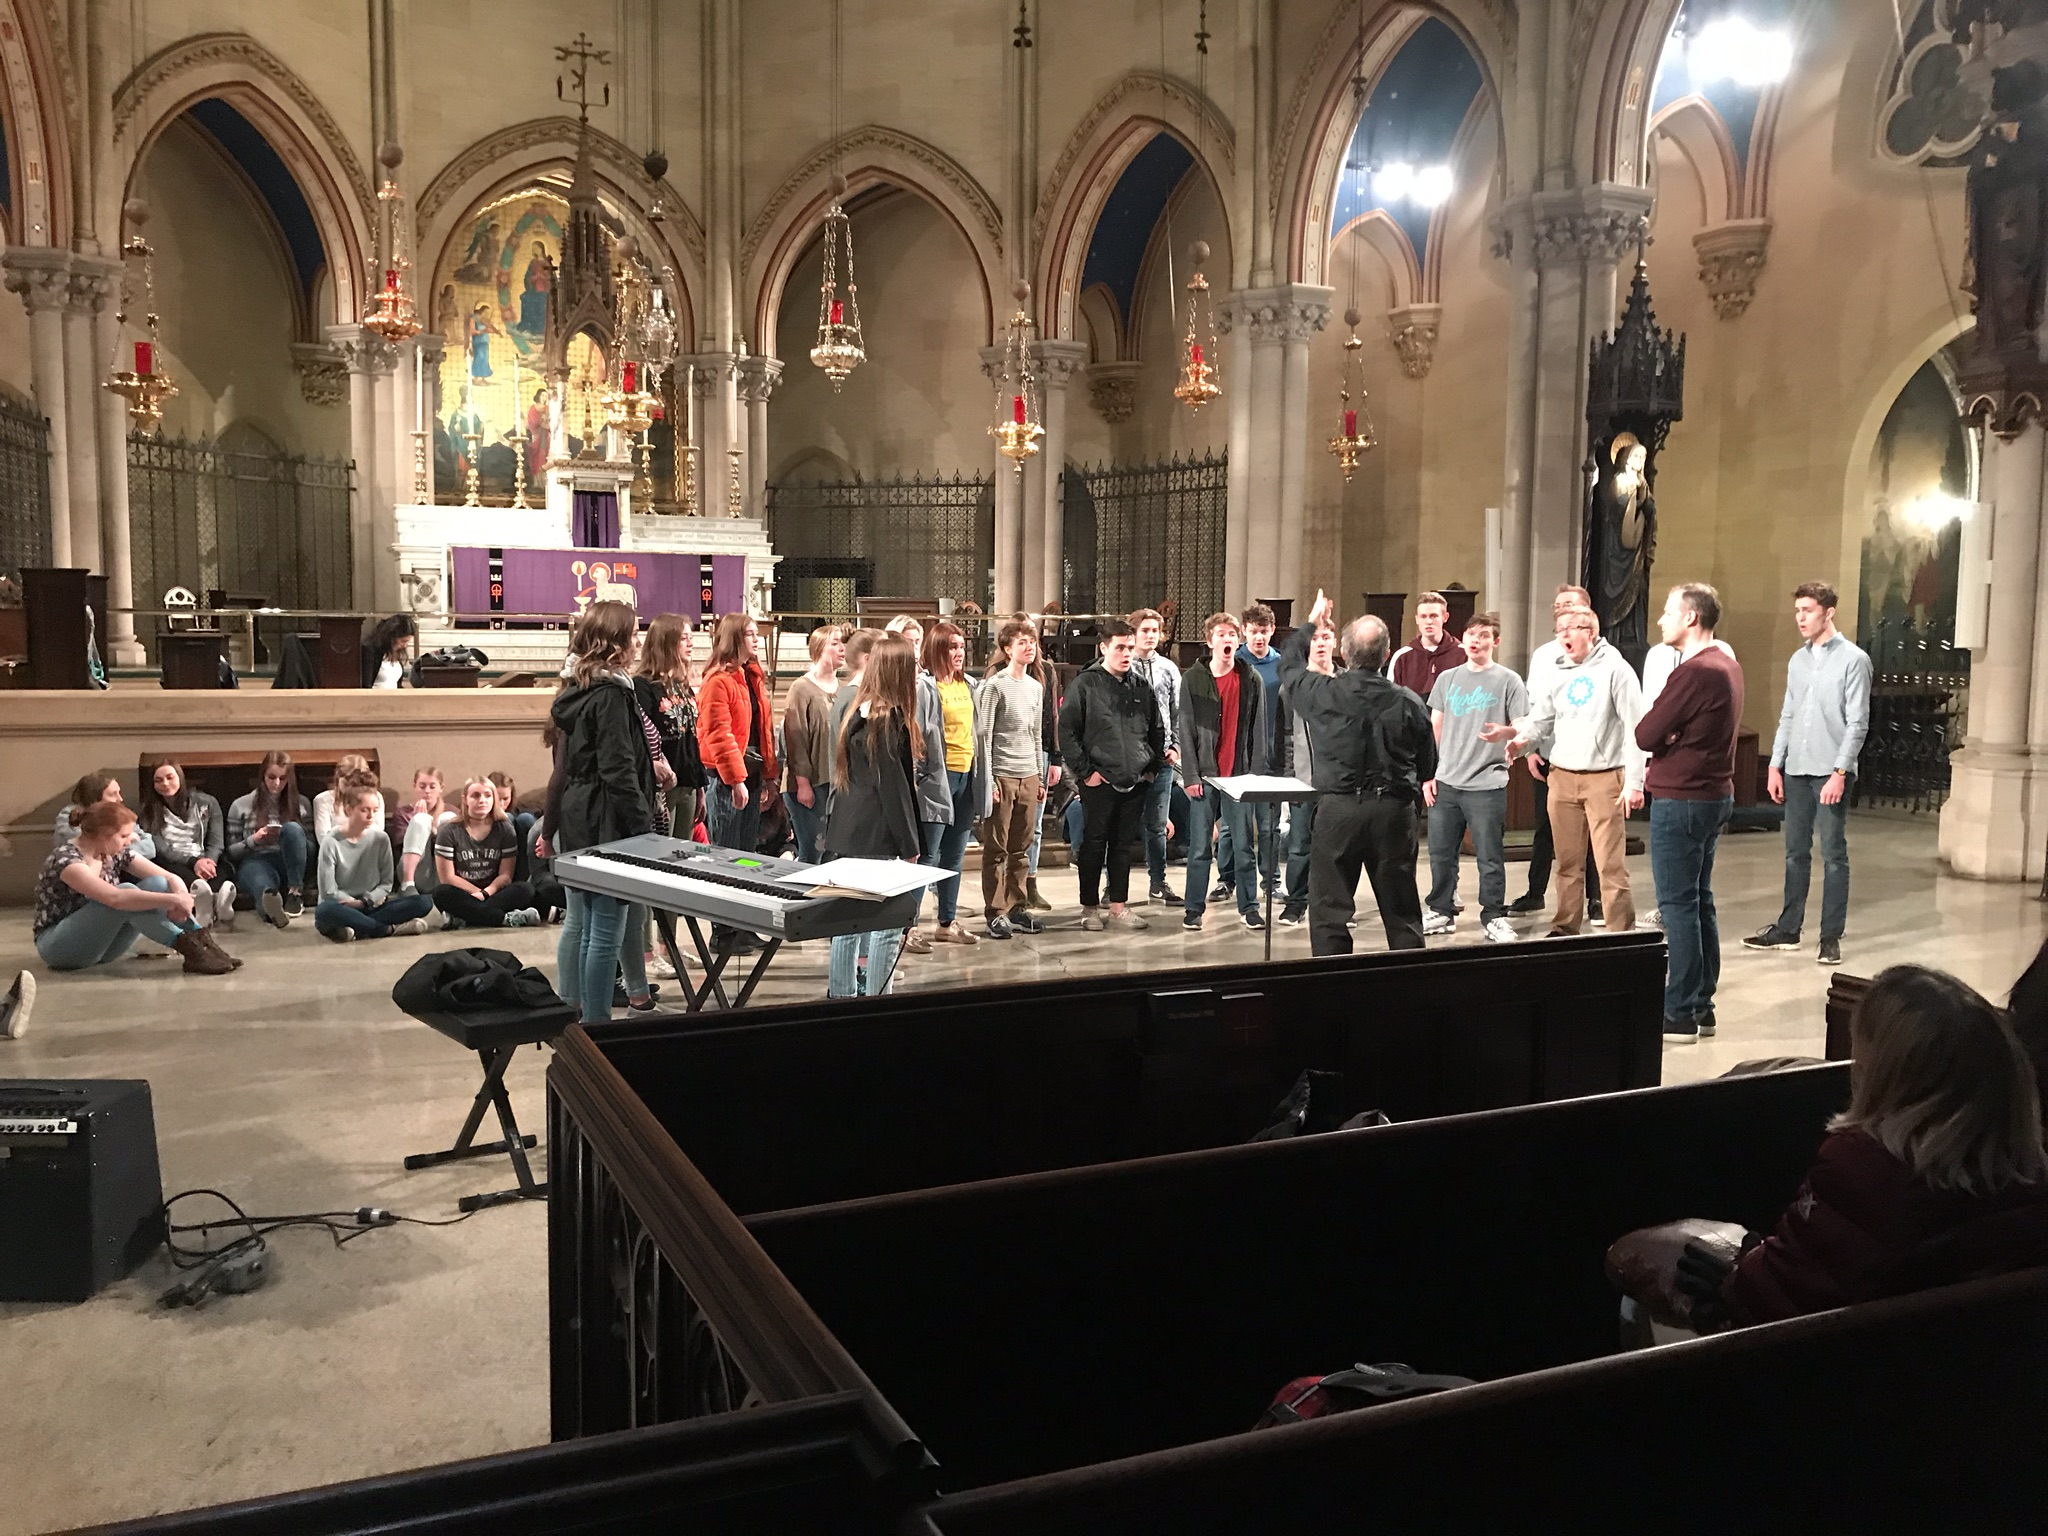 Kent Tritle, director of cathedral music and organist at the Cathedral of St. John the Divine, conducts a rehearsal for the Bingham High School Chorus, South Jordan, UT, on Friday, March 23, 2019. This winter a number of high school groups are rehearsing in our church before performing here in the city. As the photograph was taken, the group was rehearsing Mozart's  Ave Verum Corpus.    Photo by the Rector